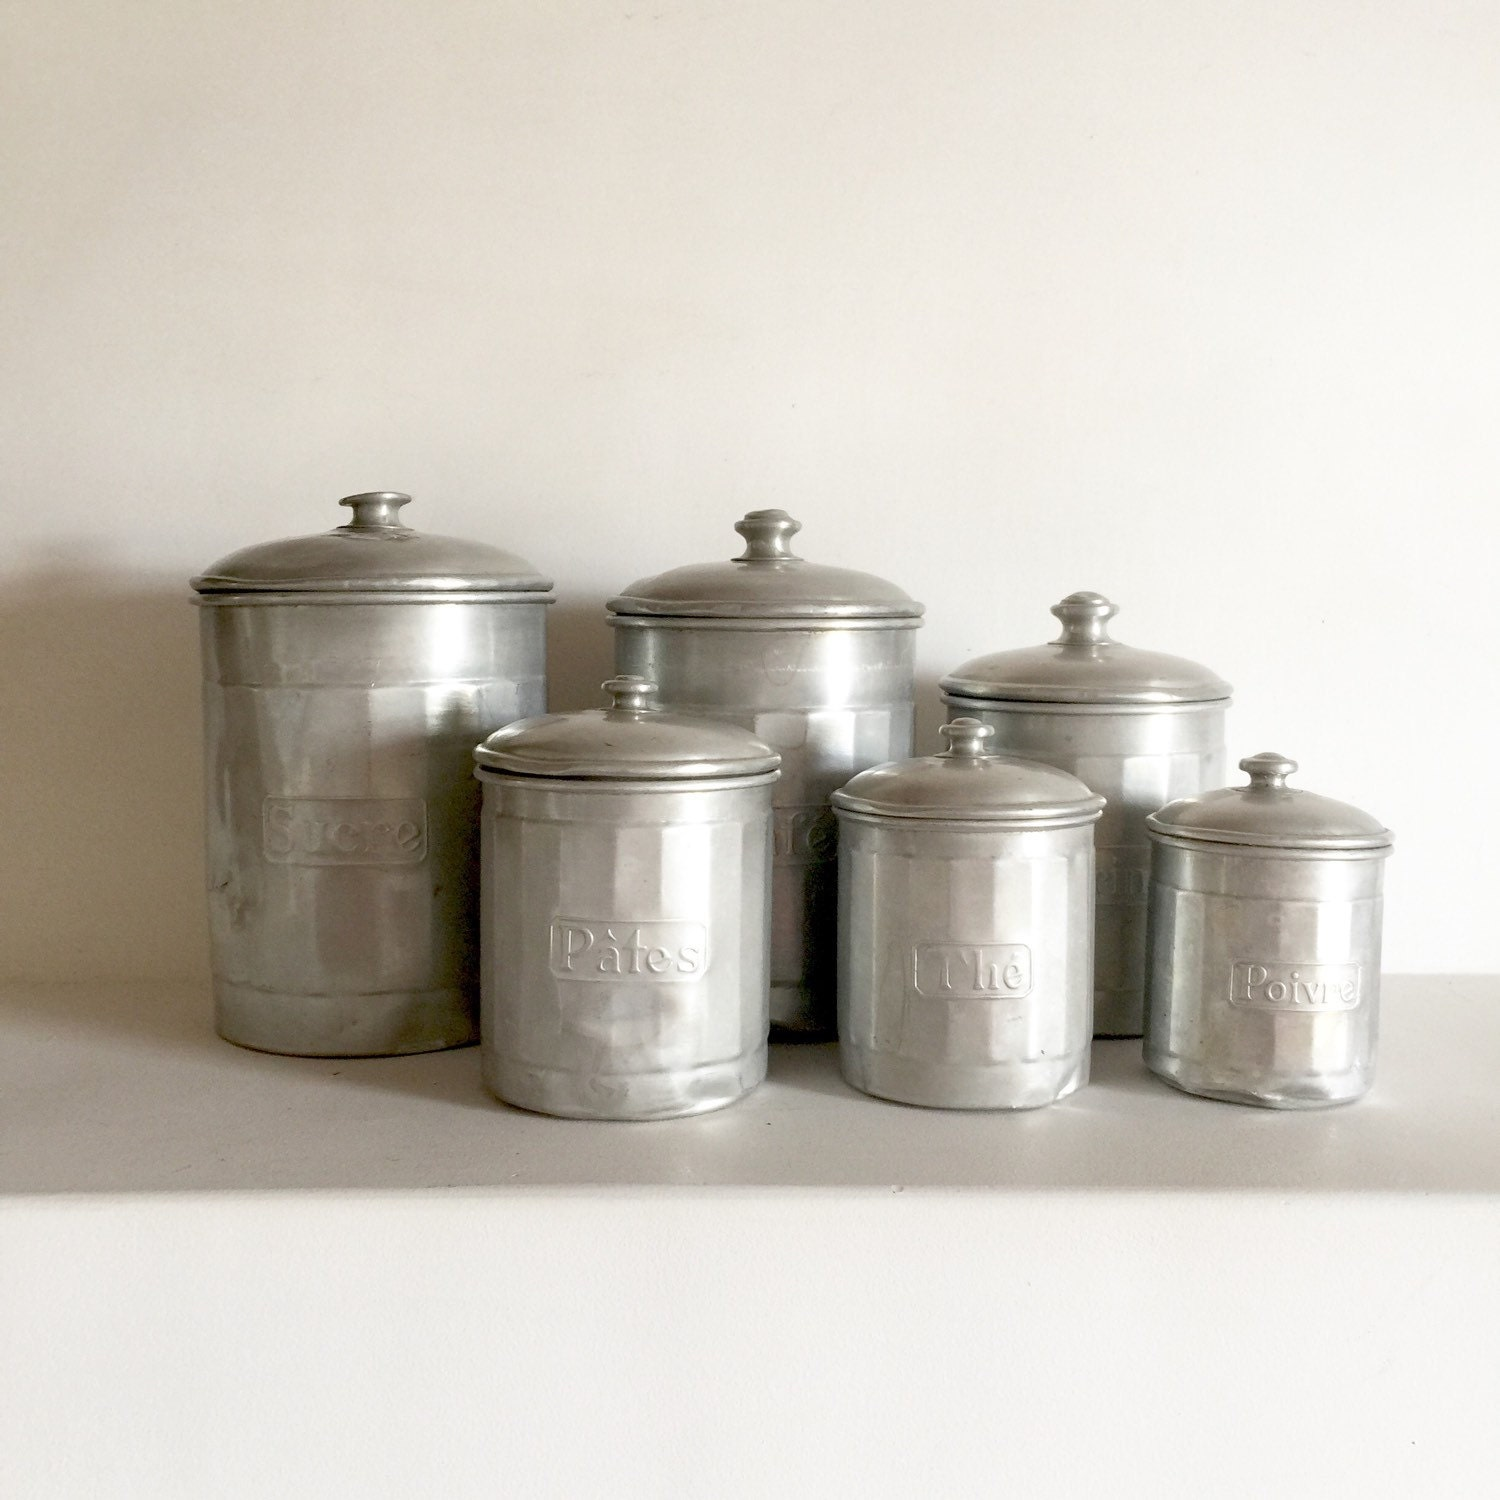 french vintage aluminum canister set french kitchen